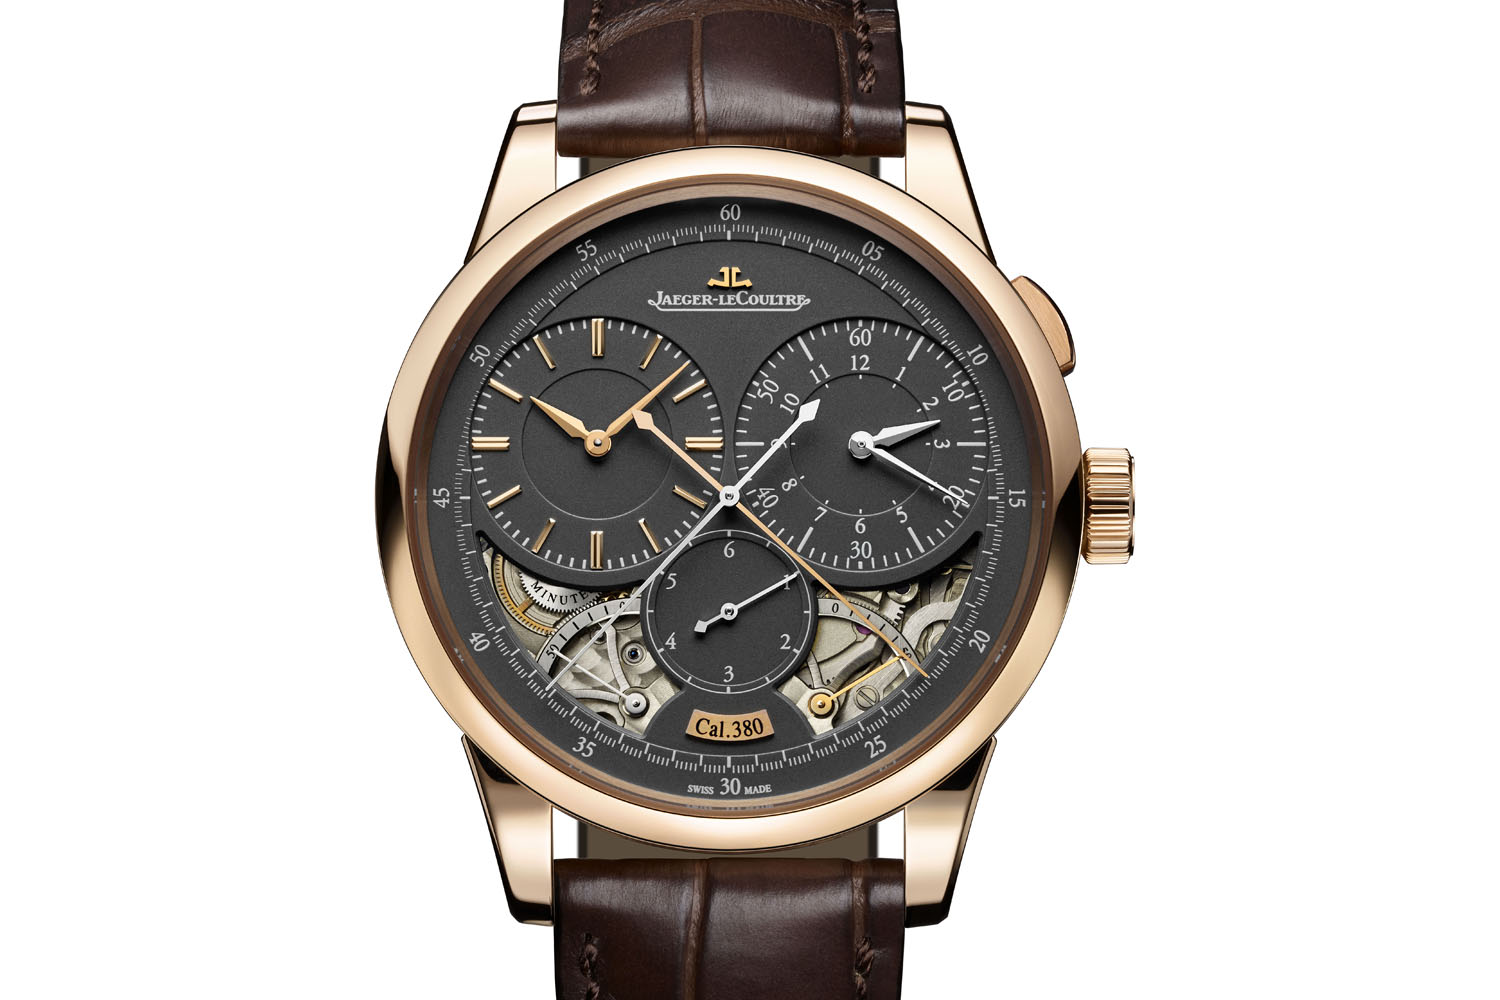 Jaeger-LeCoultre Duometre magnetite grey dials pink gold - SIHH 2017